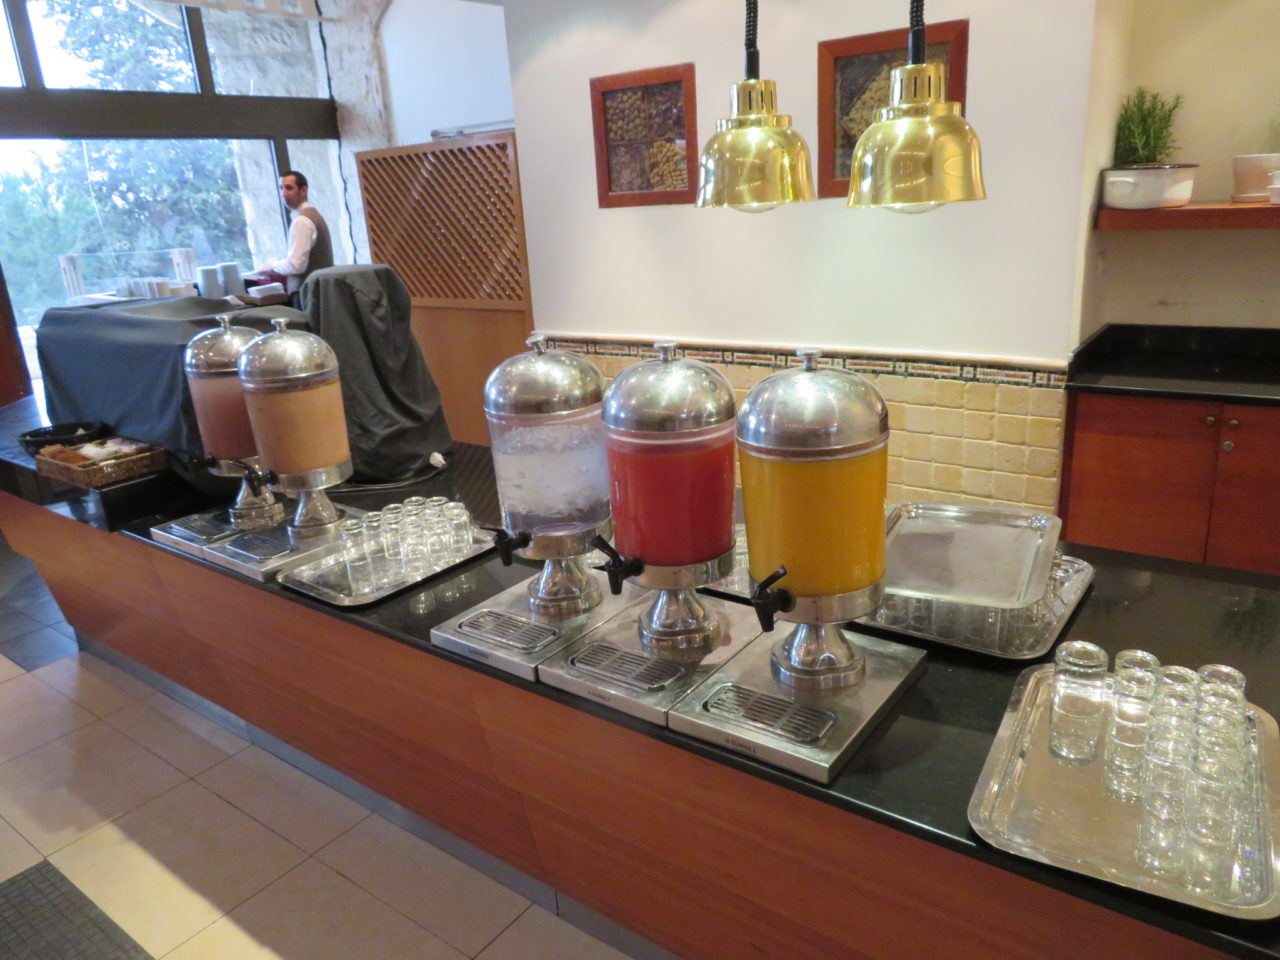 Israeli Breakfast : Freshly Squeezed Juices